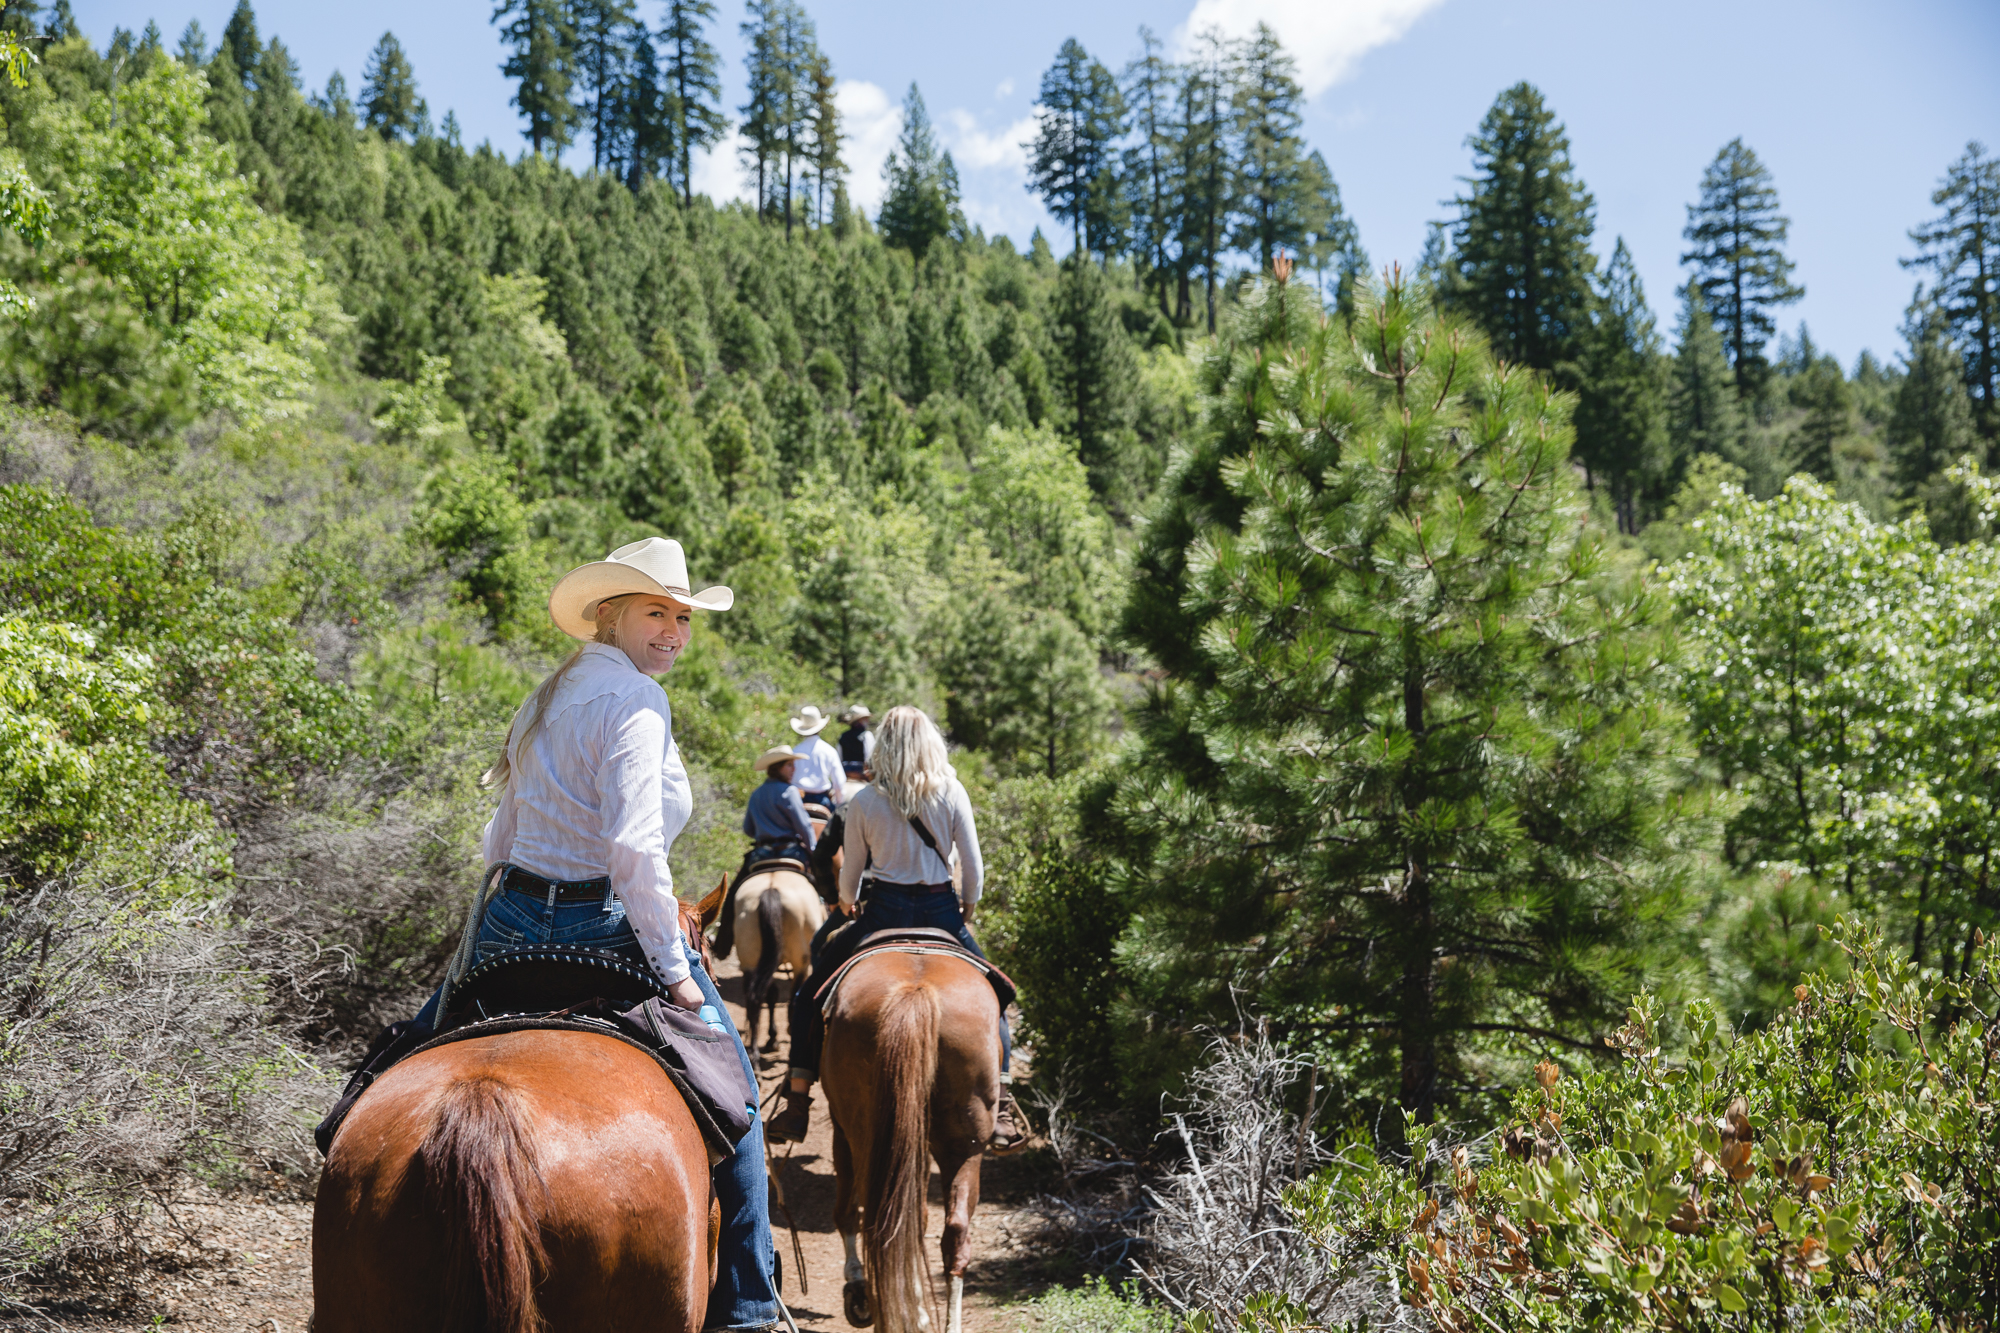 There is no cell phone service out on the trail at Greenhorn Ranch